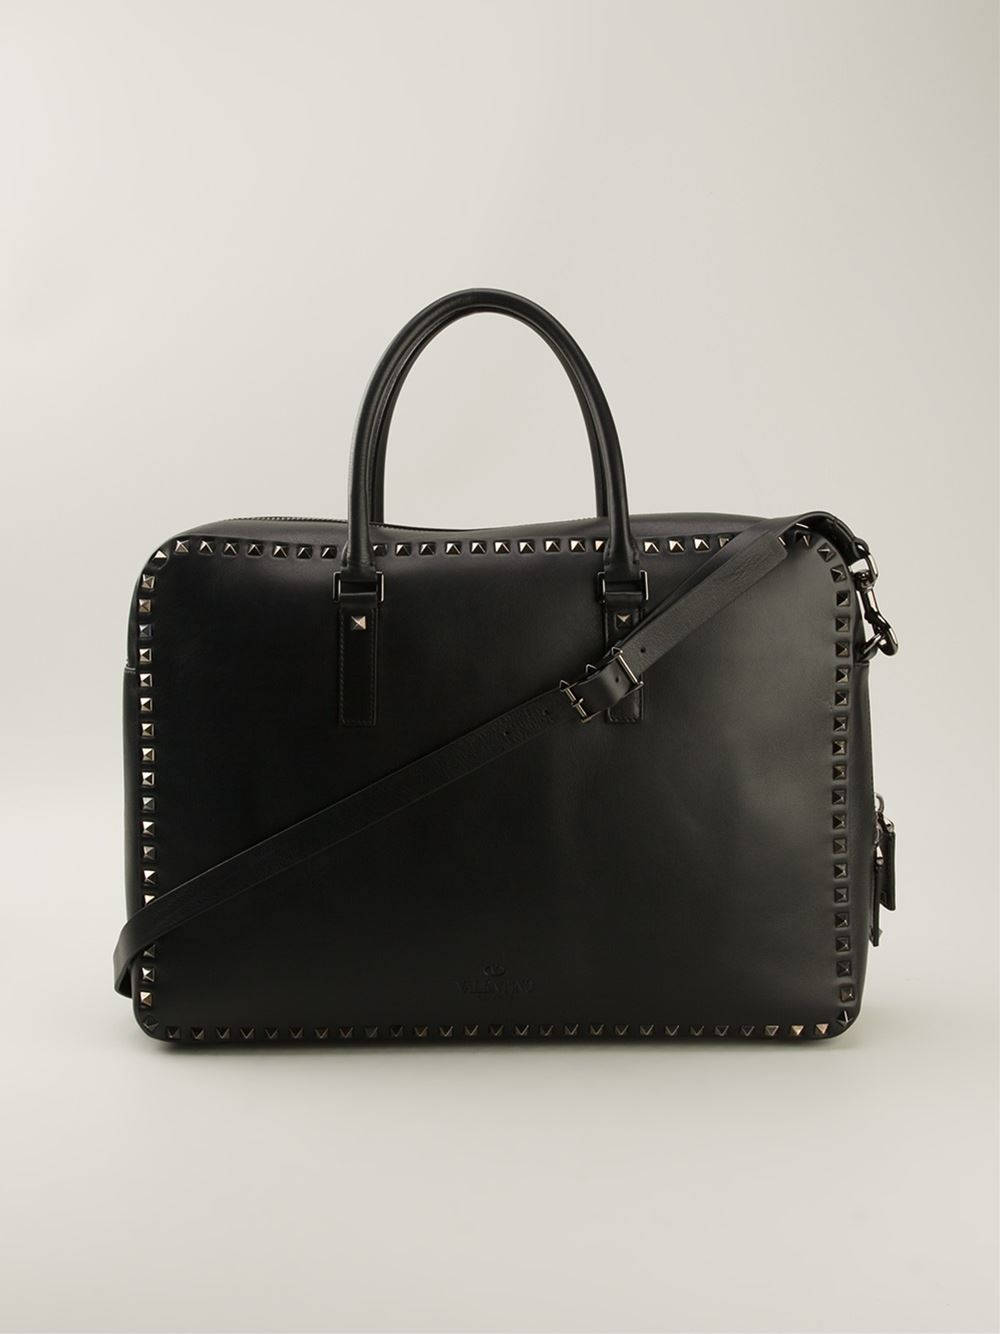 834df9f0dfc Valentino 'Rockstud' Laptop Bag in Black for Men - Lyst